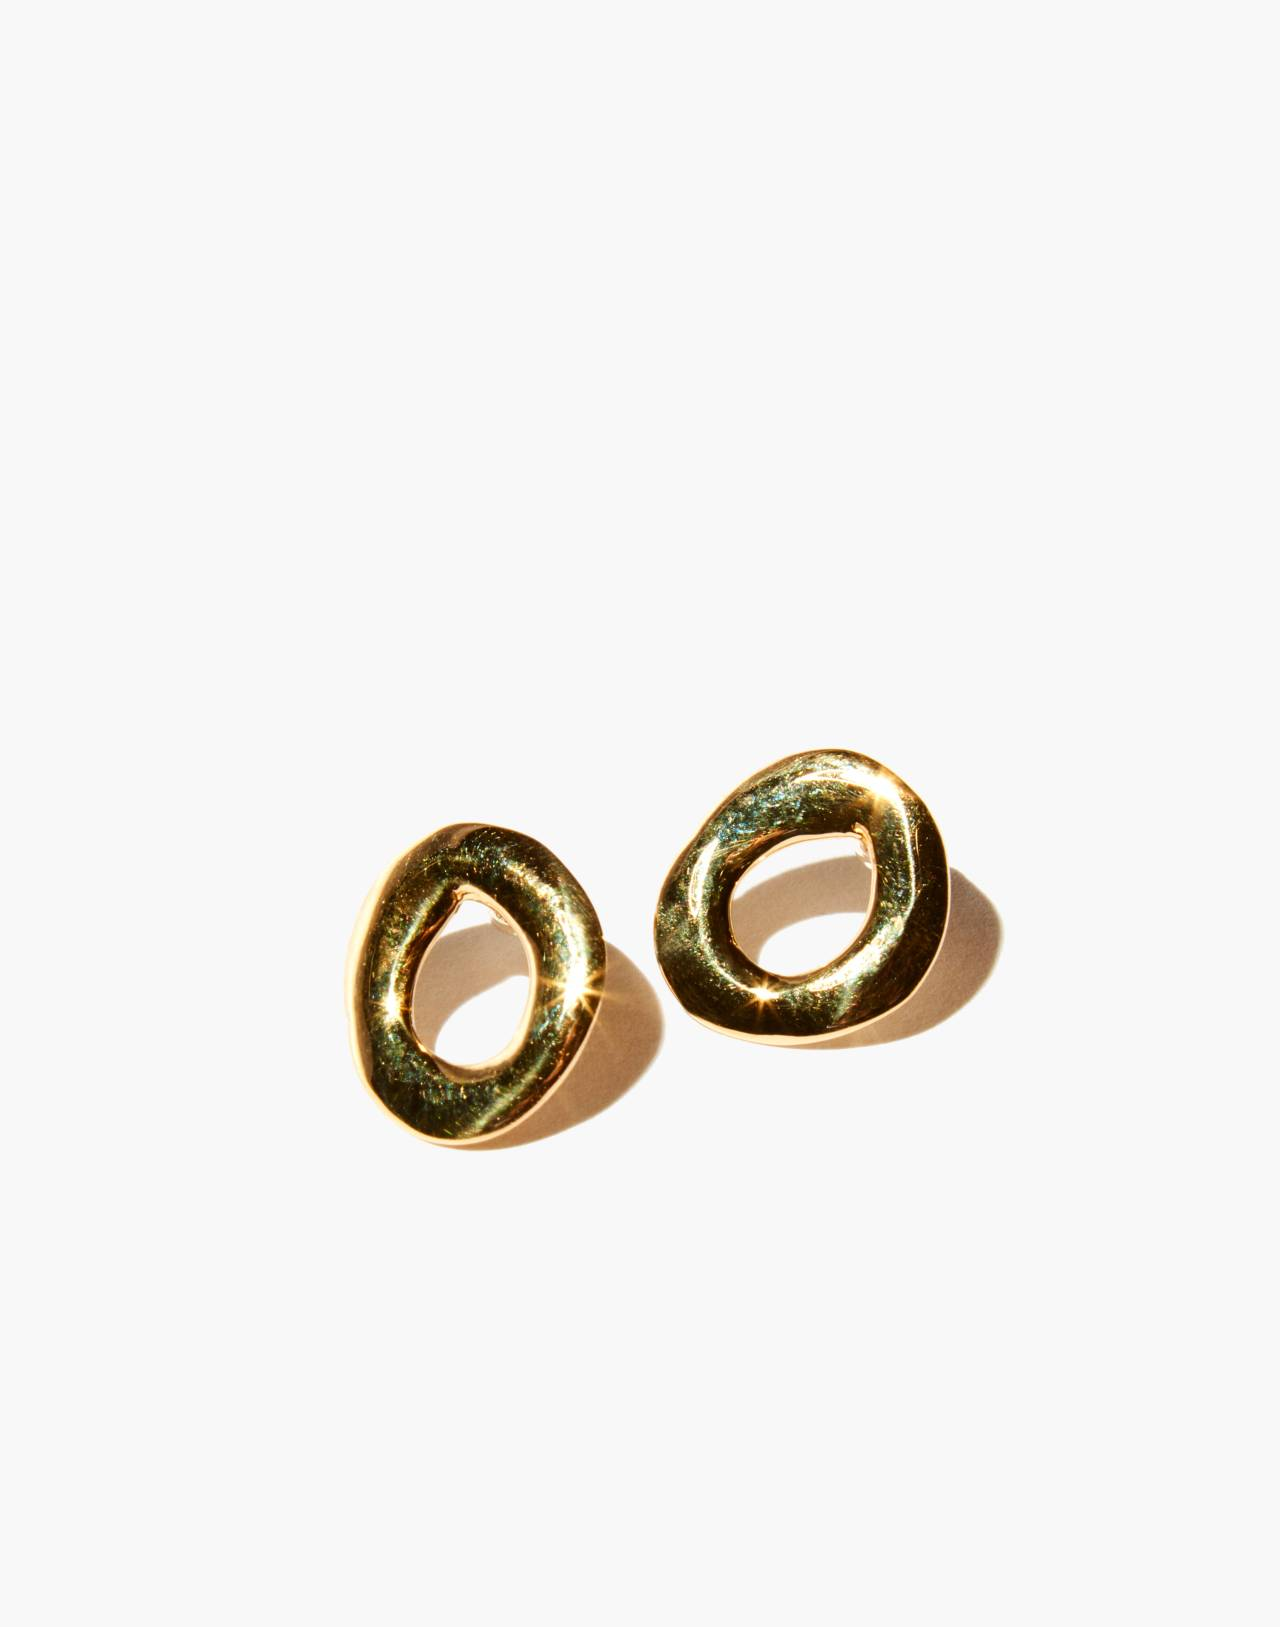 Odette New York® Coco Earrings in gold image 1